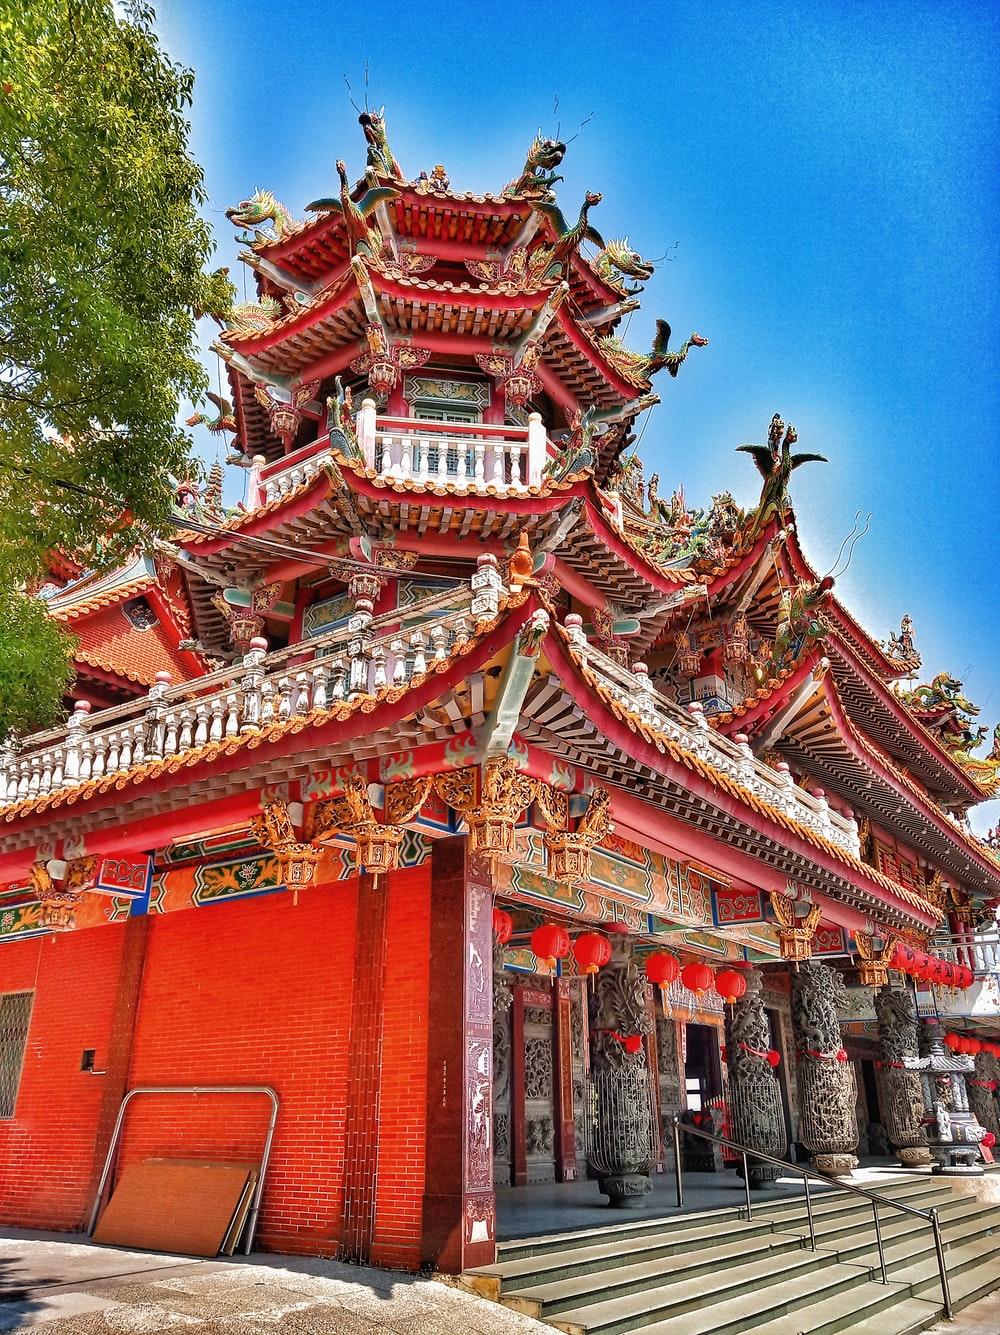 red and white temple under blue sky during daytime